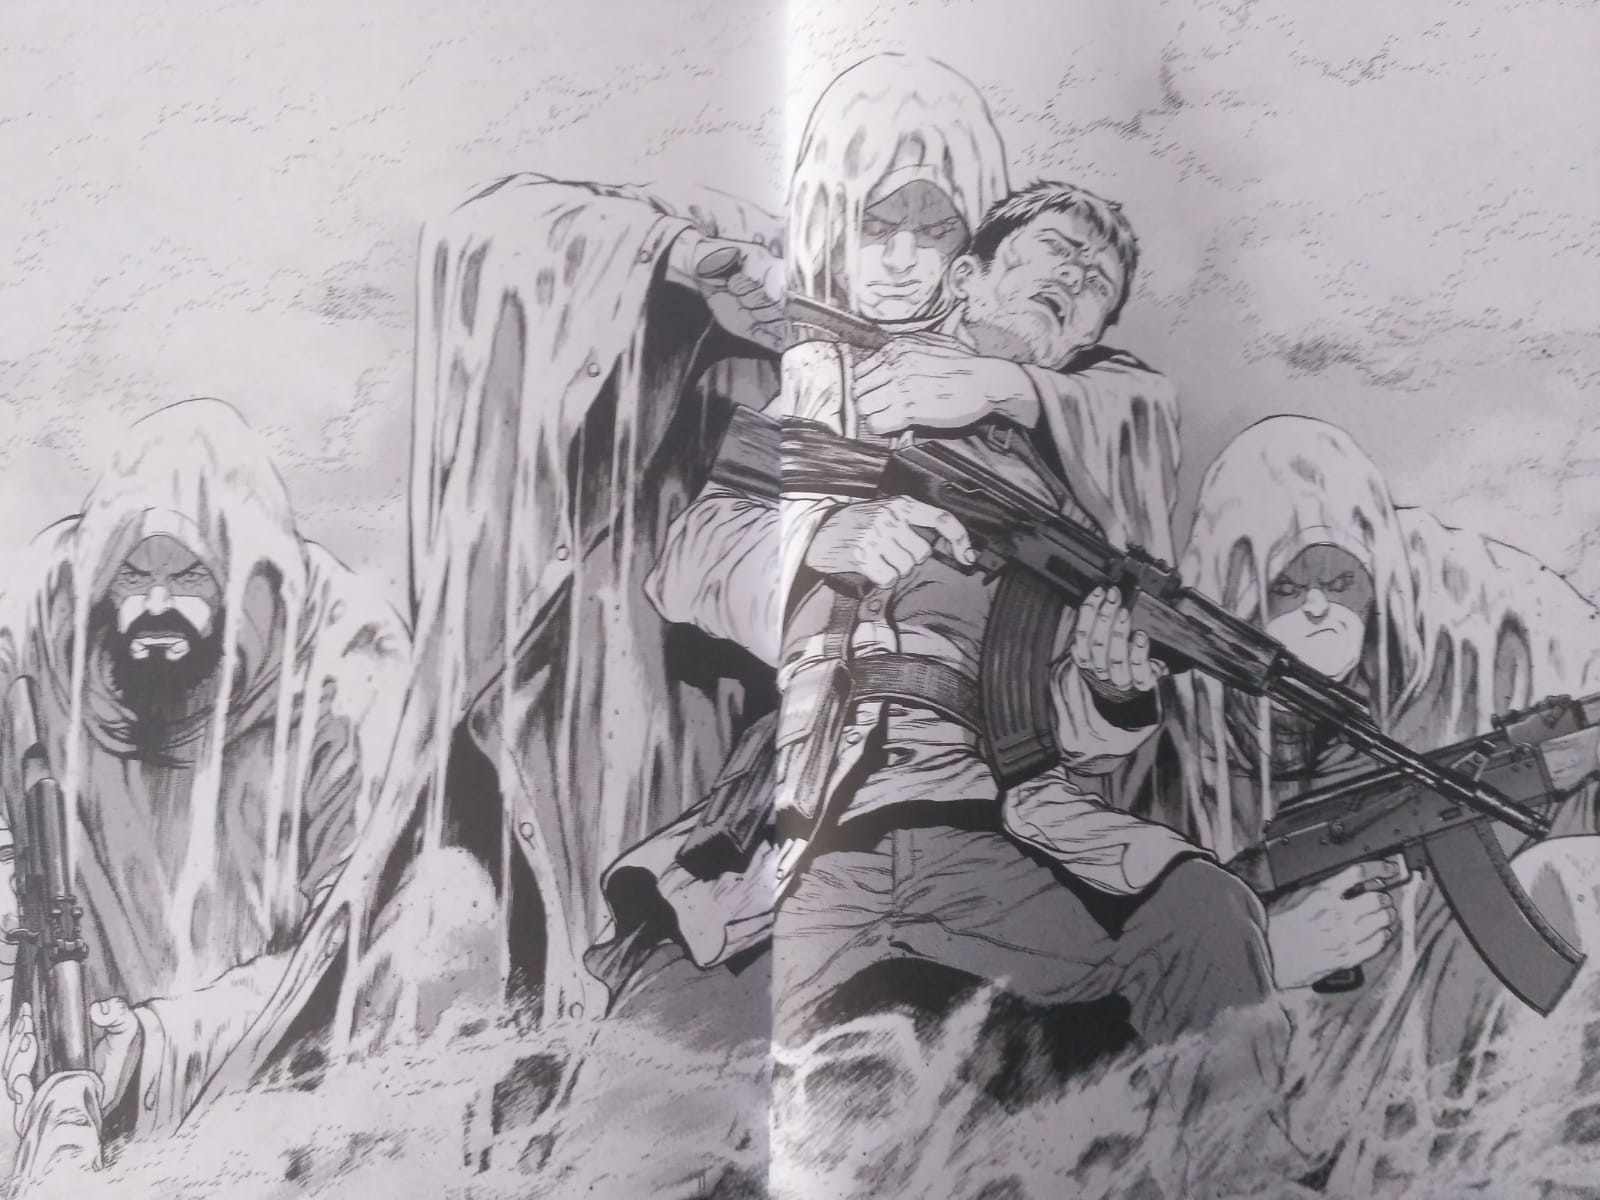 Ghost in the Shell: Arise #7 argumento personajes